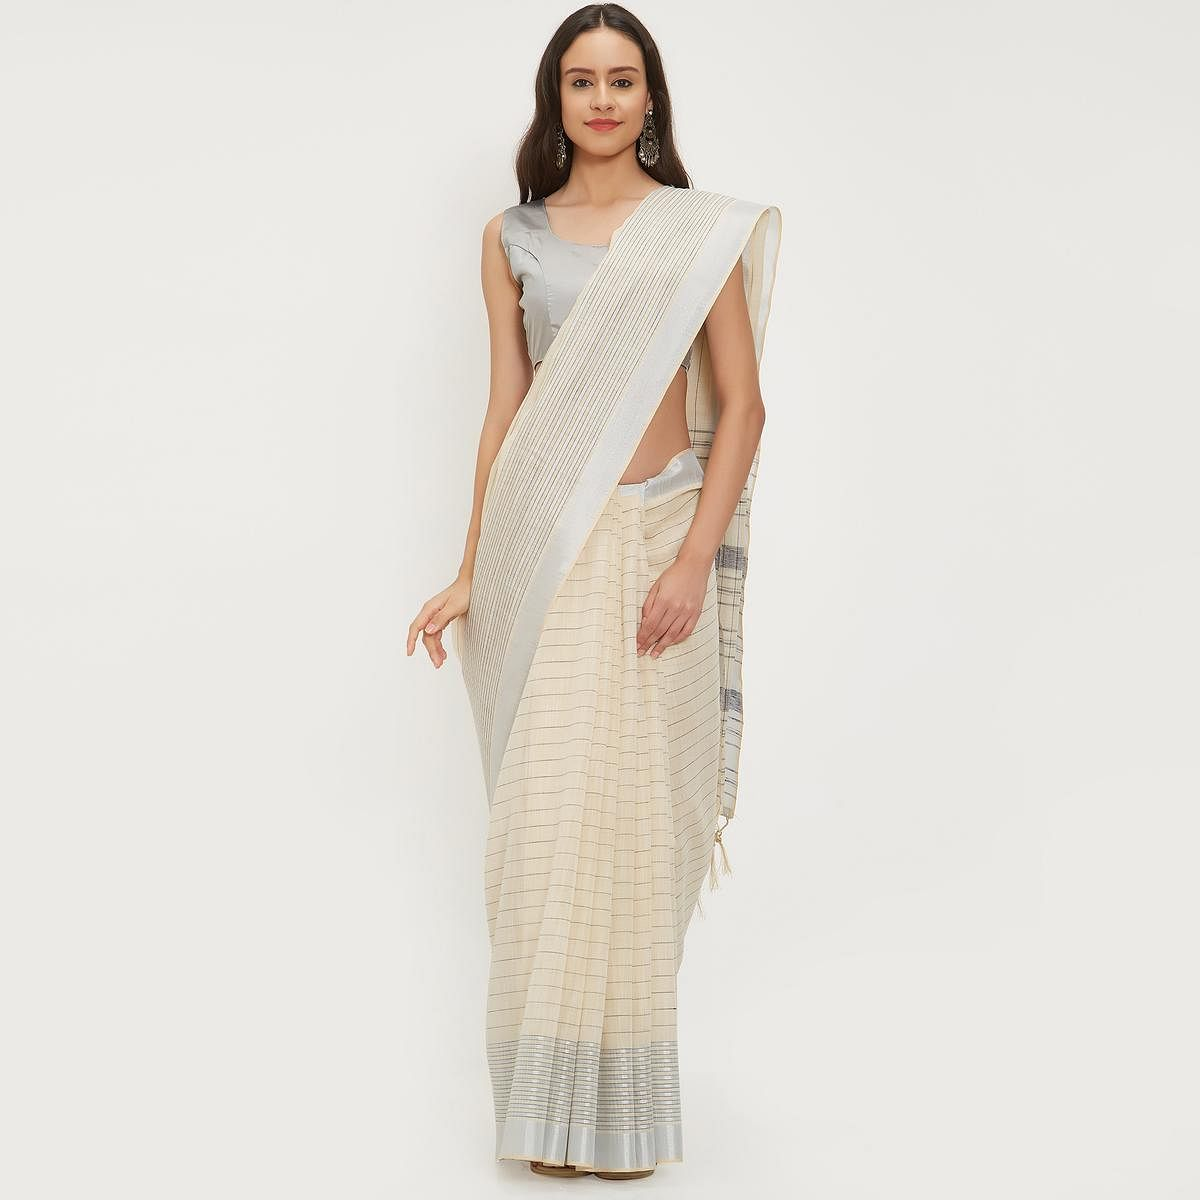 Absorbing Off-White Colored Casual Wear Linen Saree With 2 Blouse Pieces